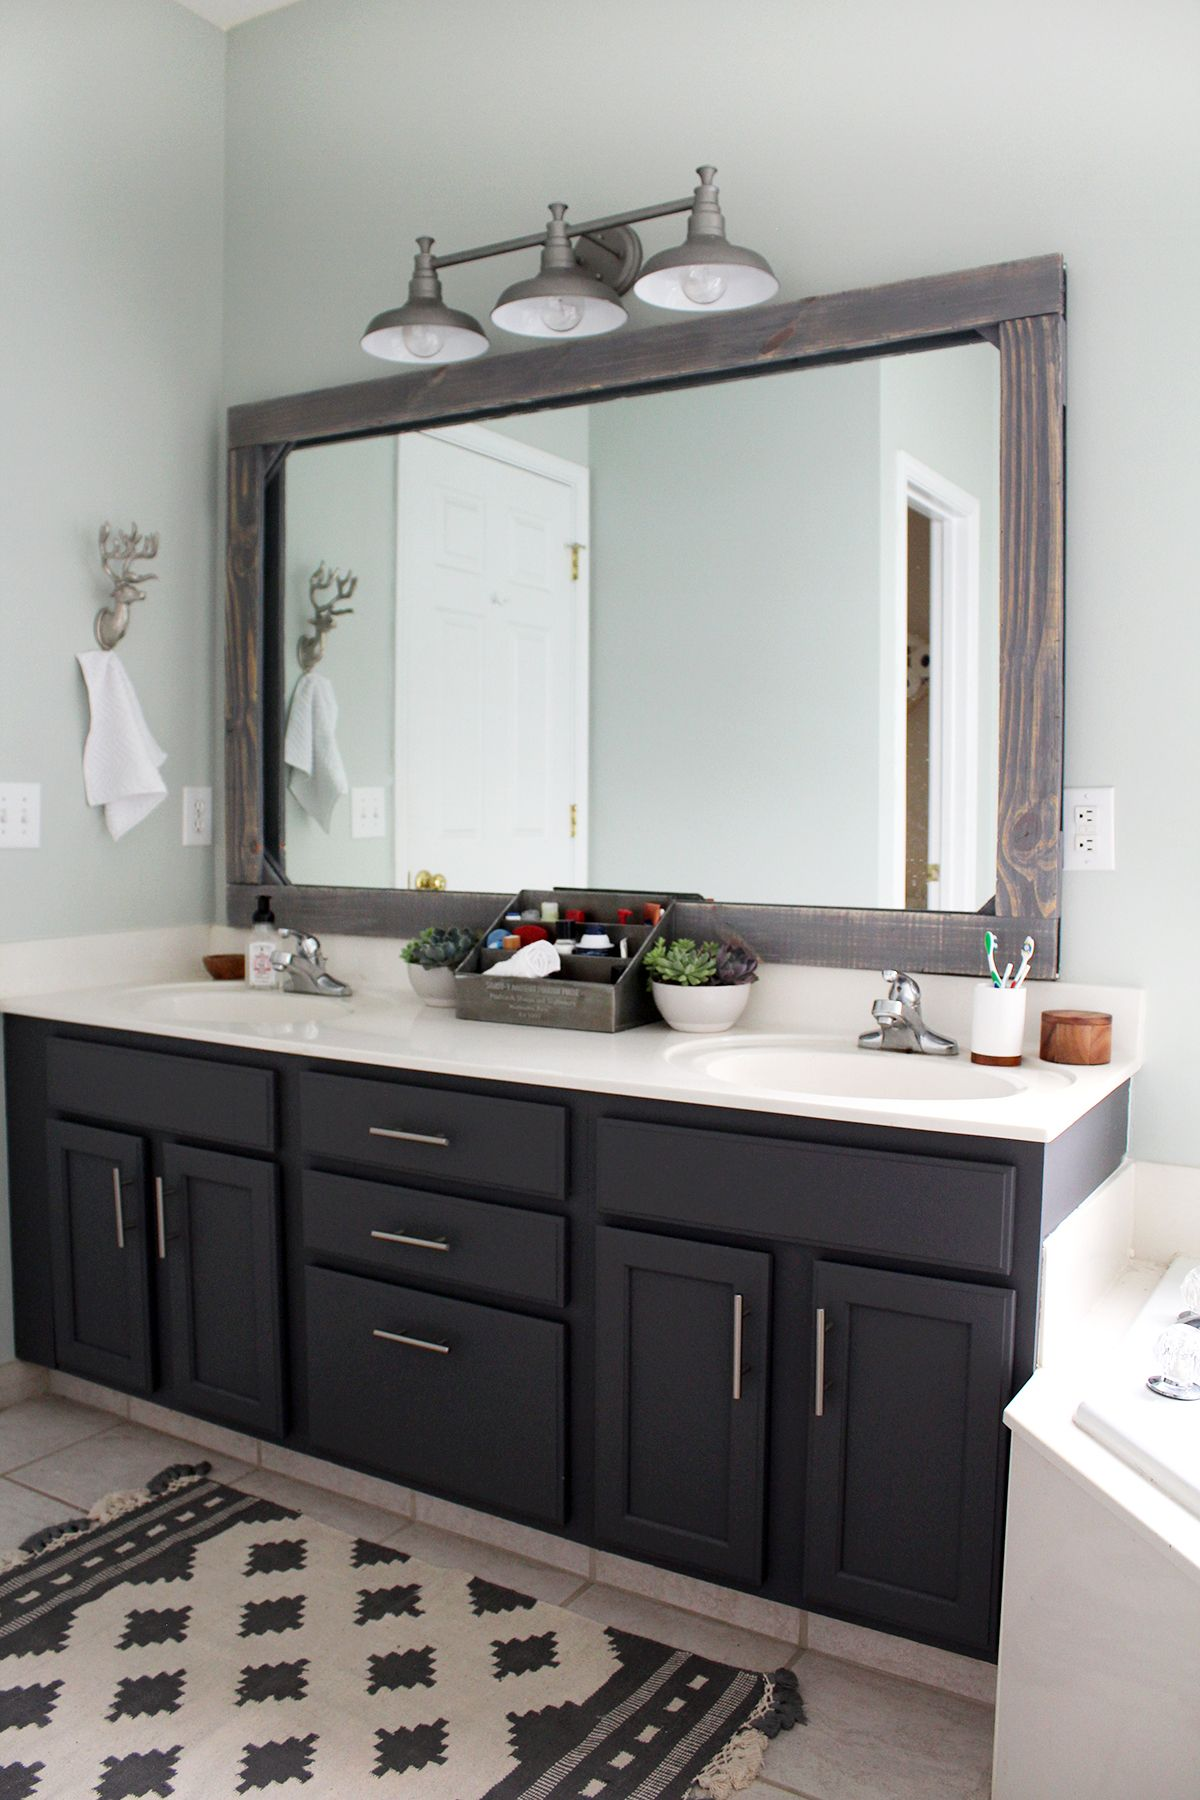 Master Bathroom Update On A 300 Budget Tag Tibby Design Remodel Mirror